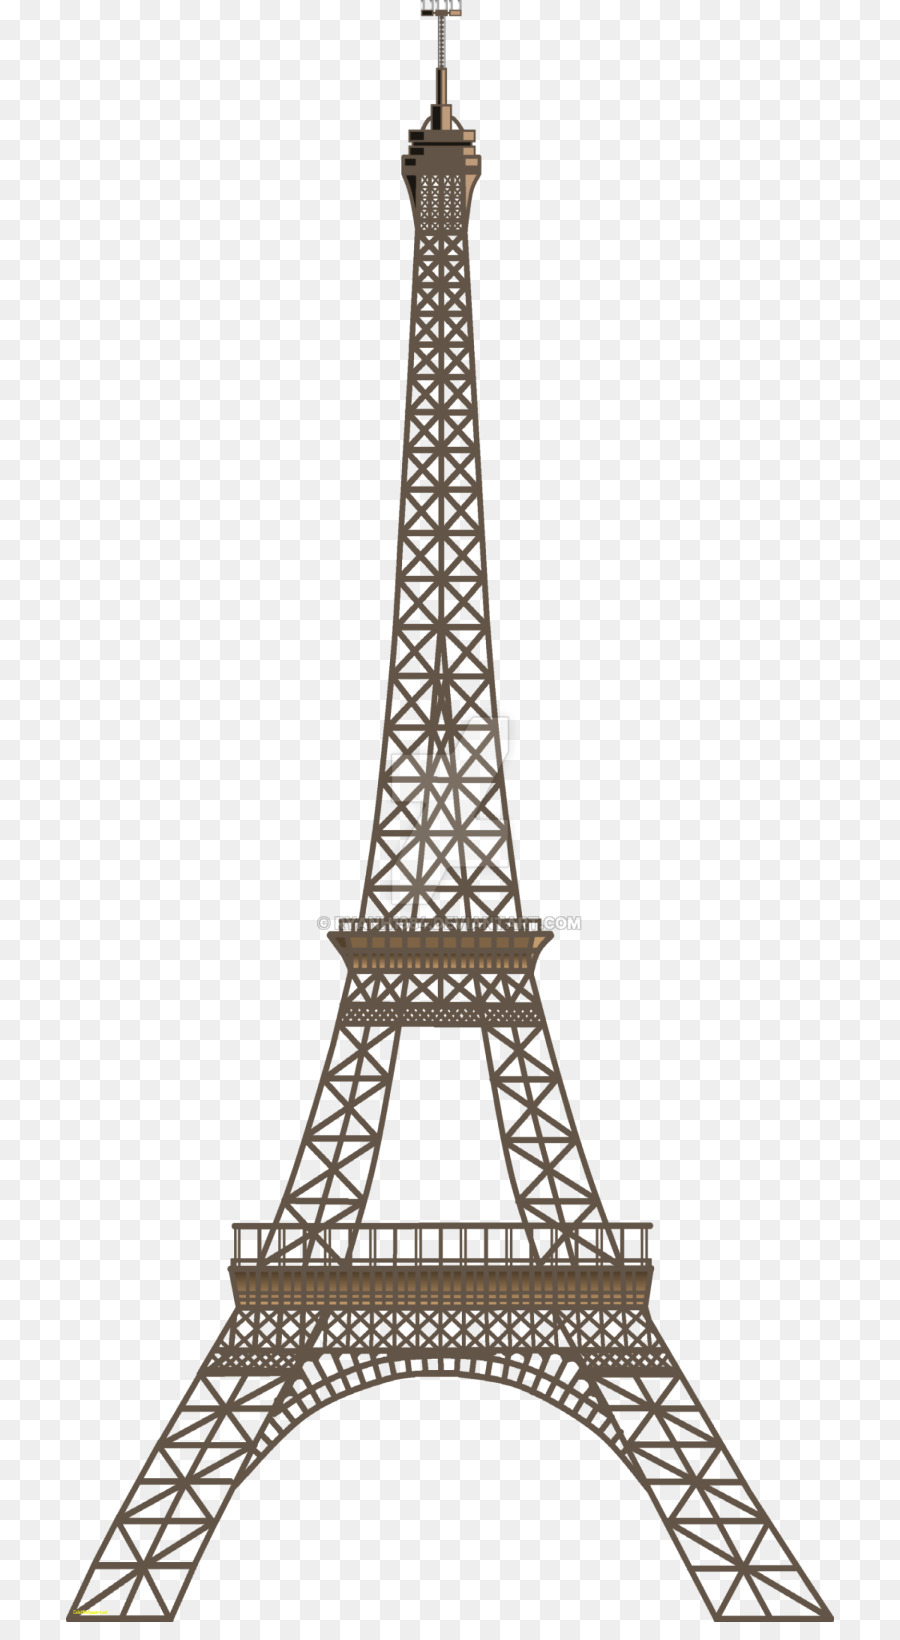 Tower clipart tower paris. Eiffel station